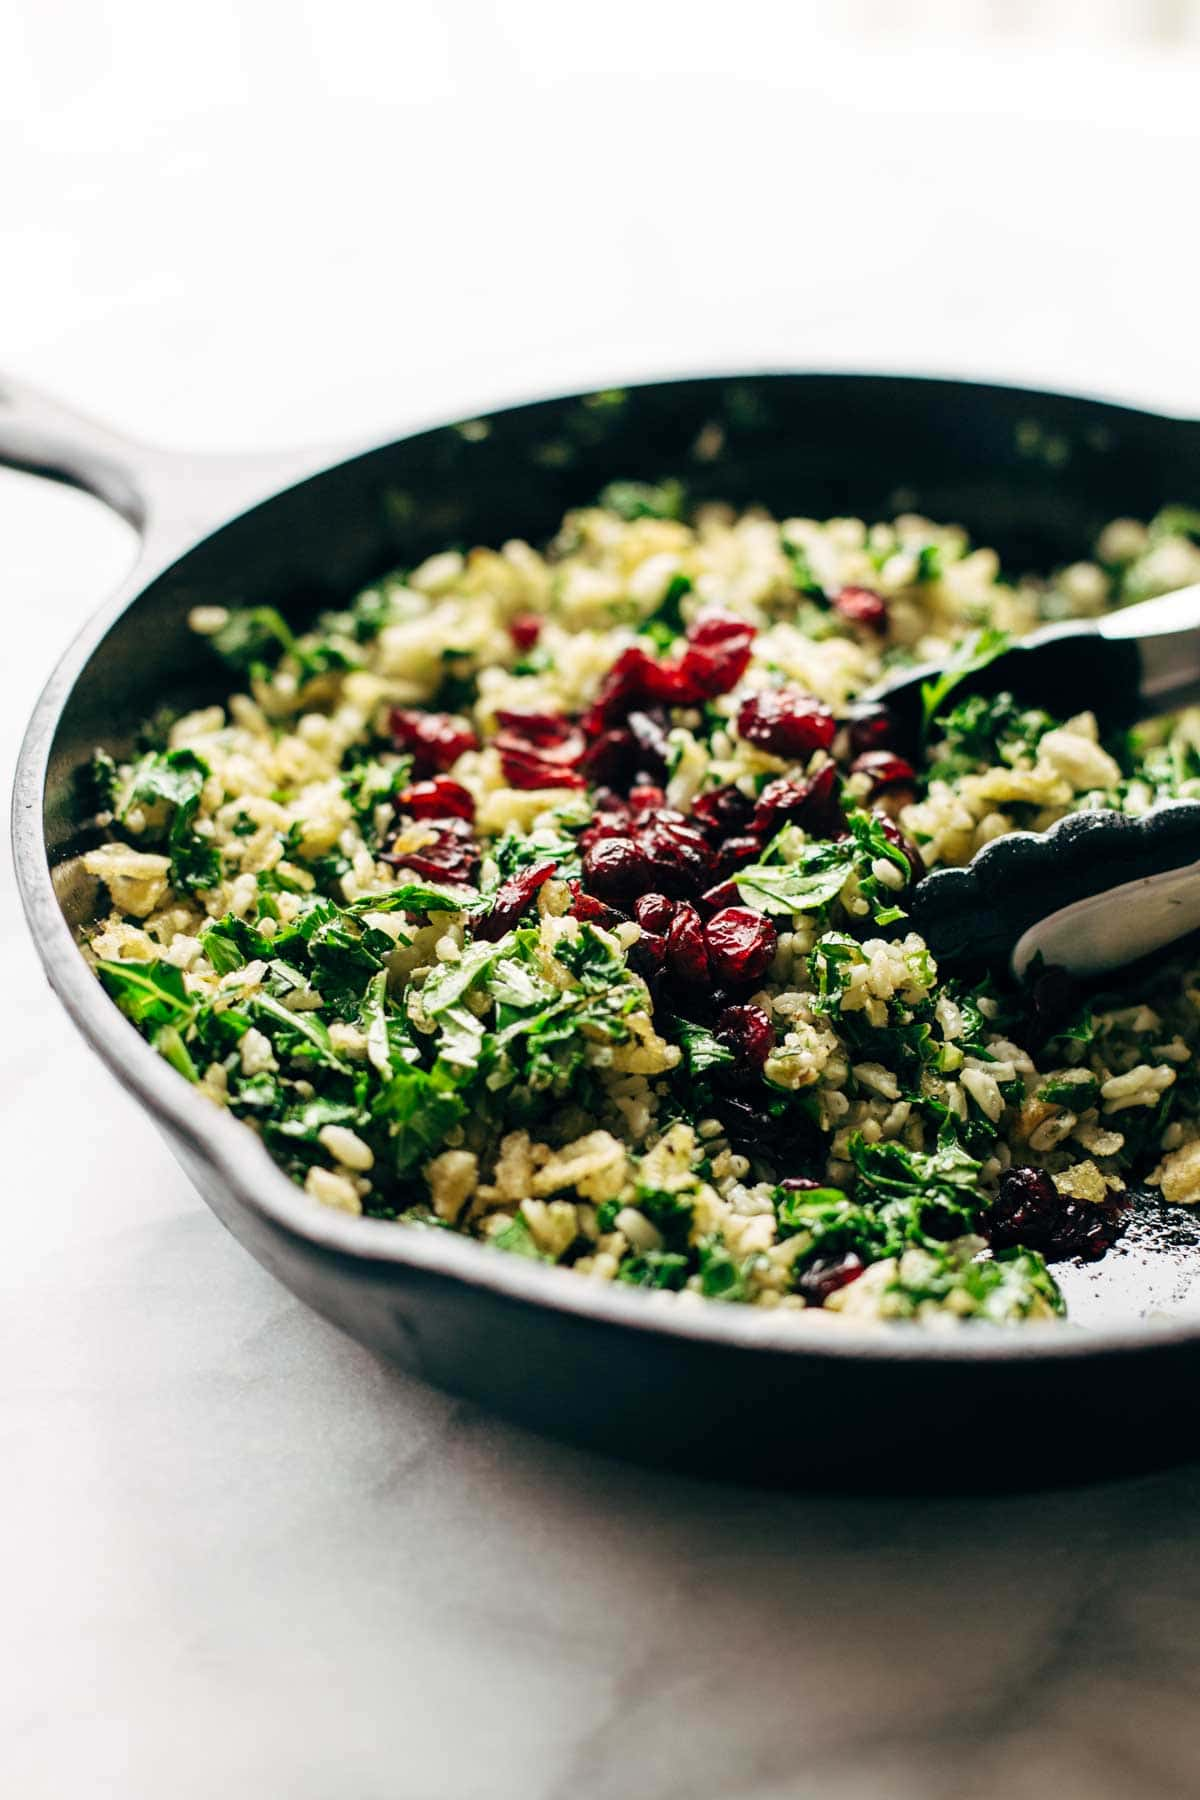 Garlic Kale and Brown Rice Salad with a zippy lemon herb dressing! This side dish recipe is so simple and it compliments almost any main dish!   pinchofyum.com